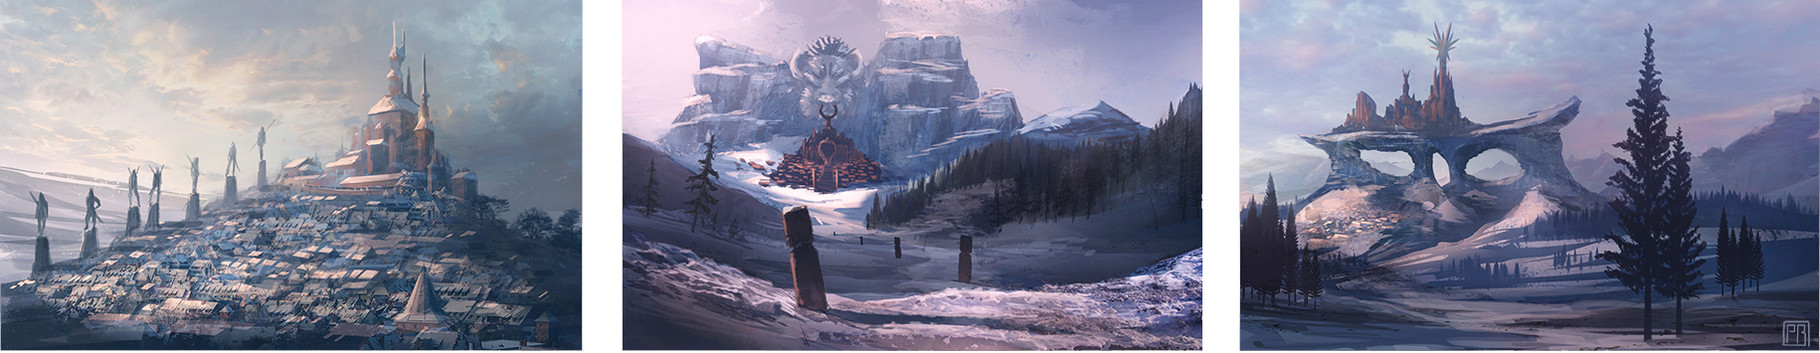 Snowy Castles - Peter Bartels- Illustration - Concept Art